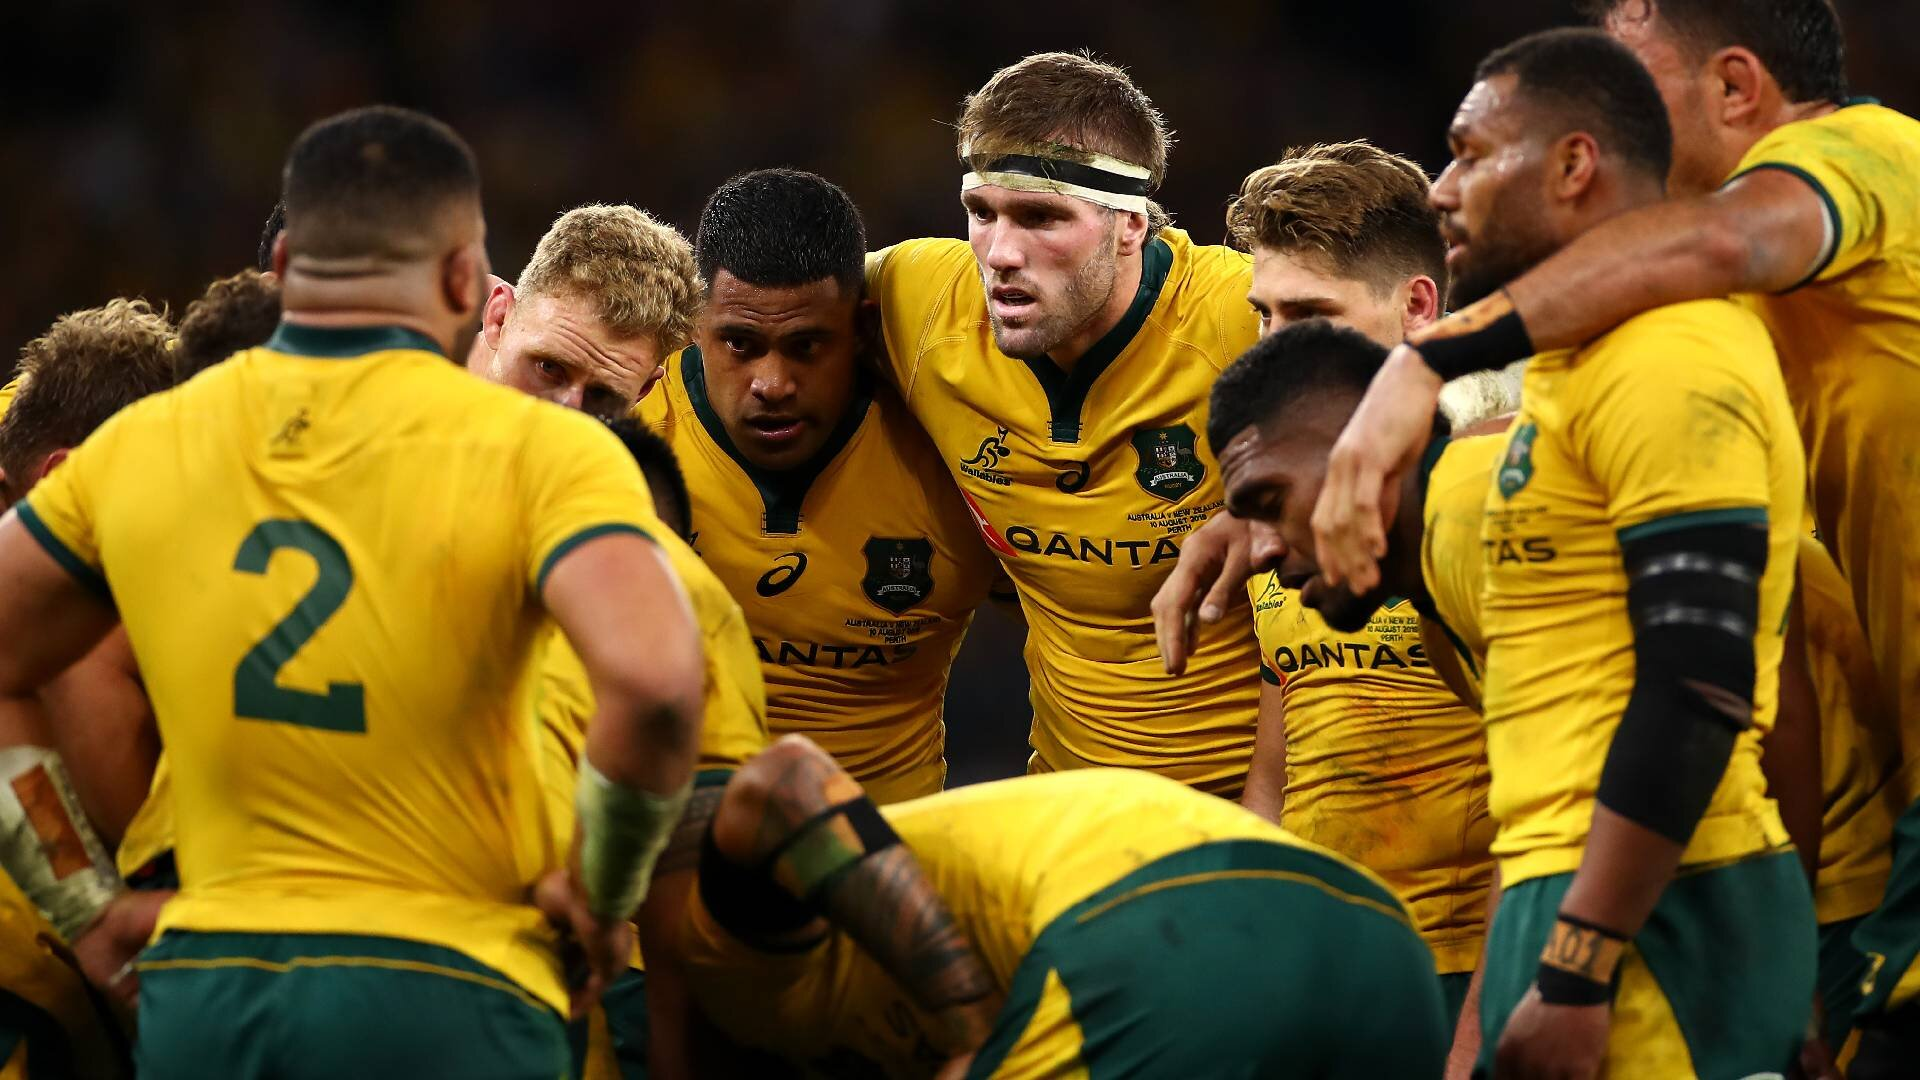 'I wouldn't be surprised if an administrator was appointed in the next fortnight' - Wallaby great's dire prediction